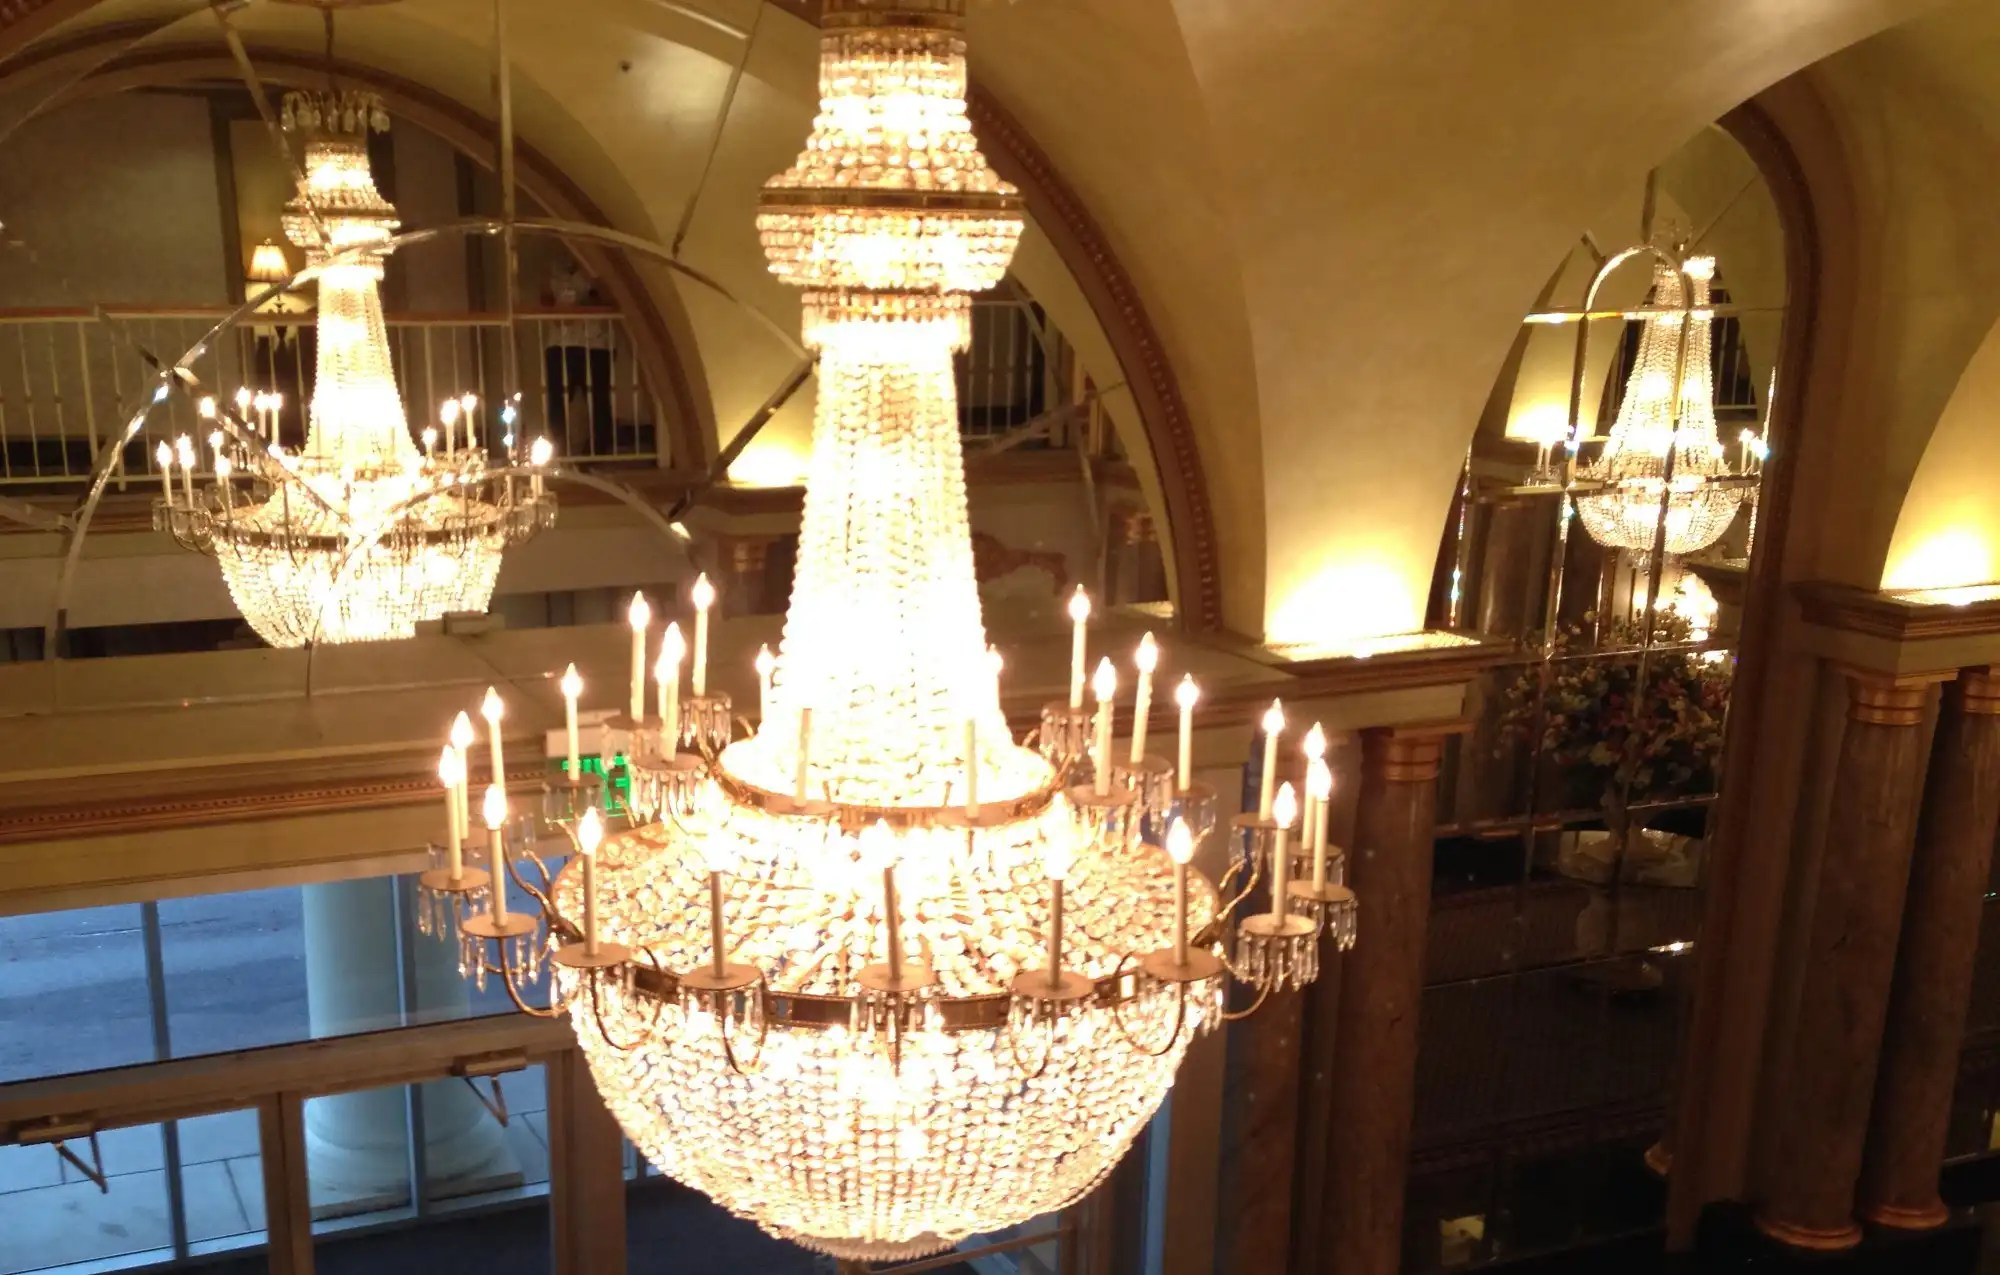 How Much Does An Electrician Charge To Install A Chandelier